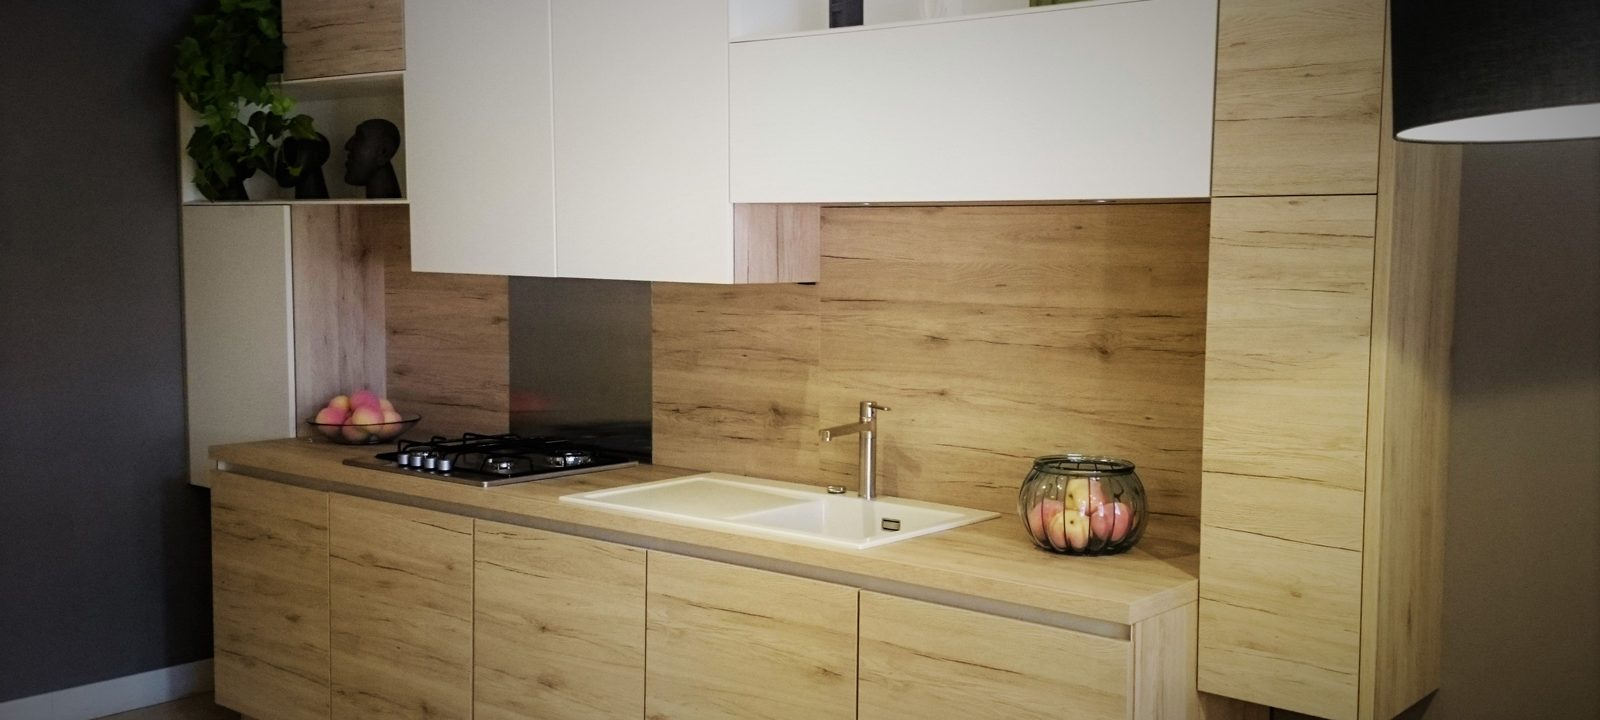 Cucine low cost roma classic kitchens snaidero frame - Cucine low cost ...